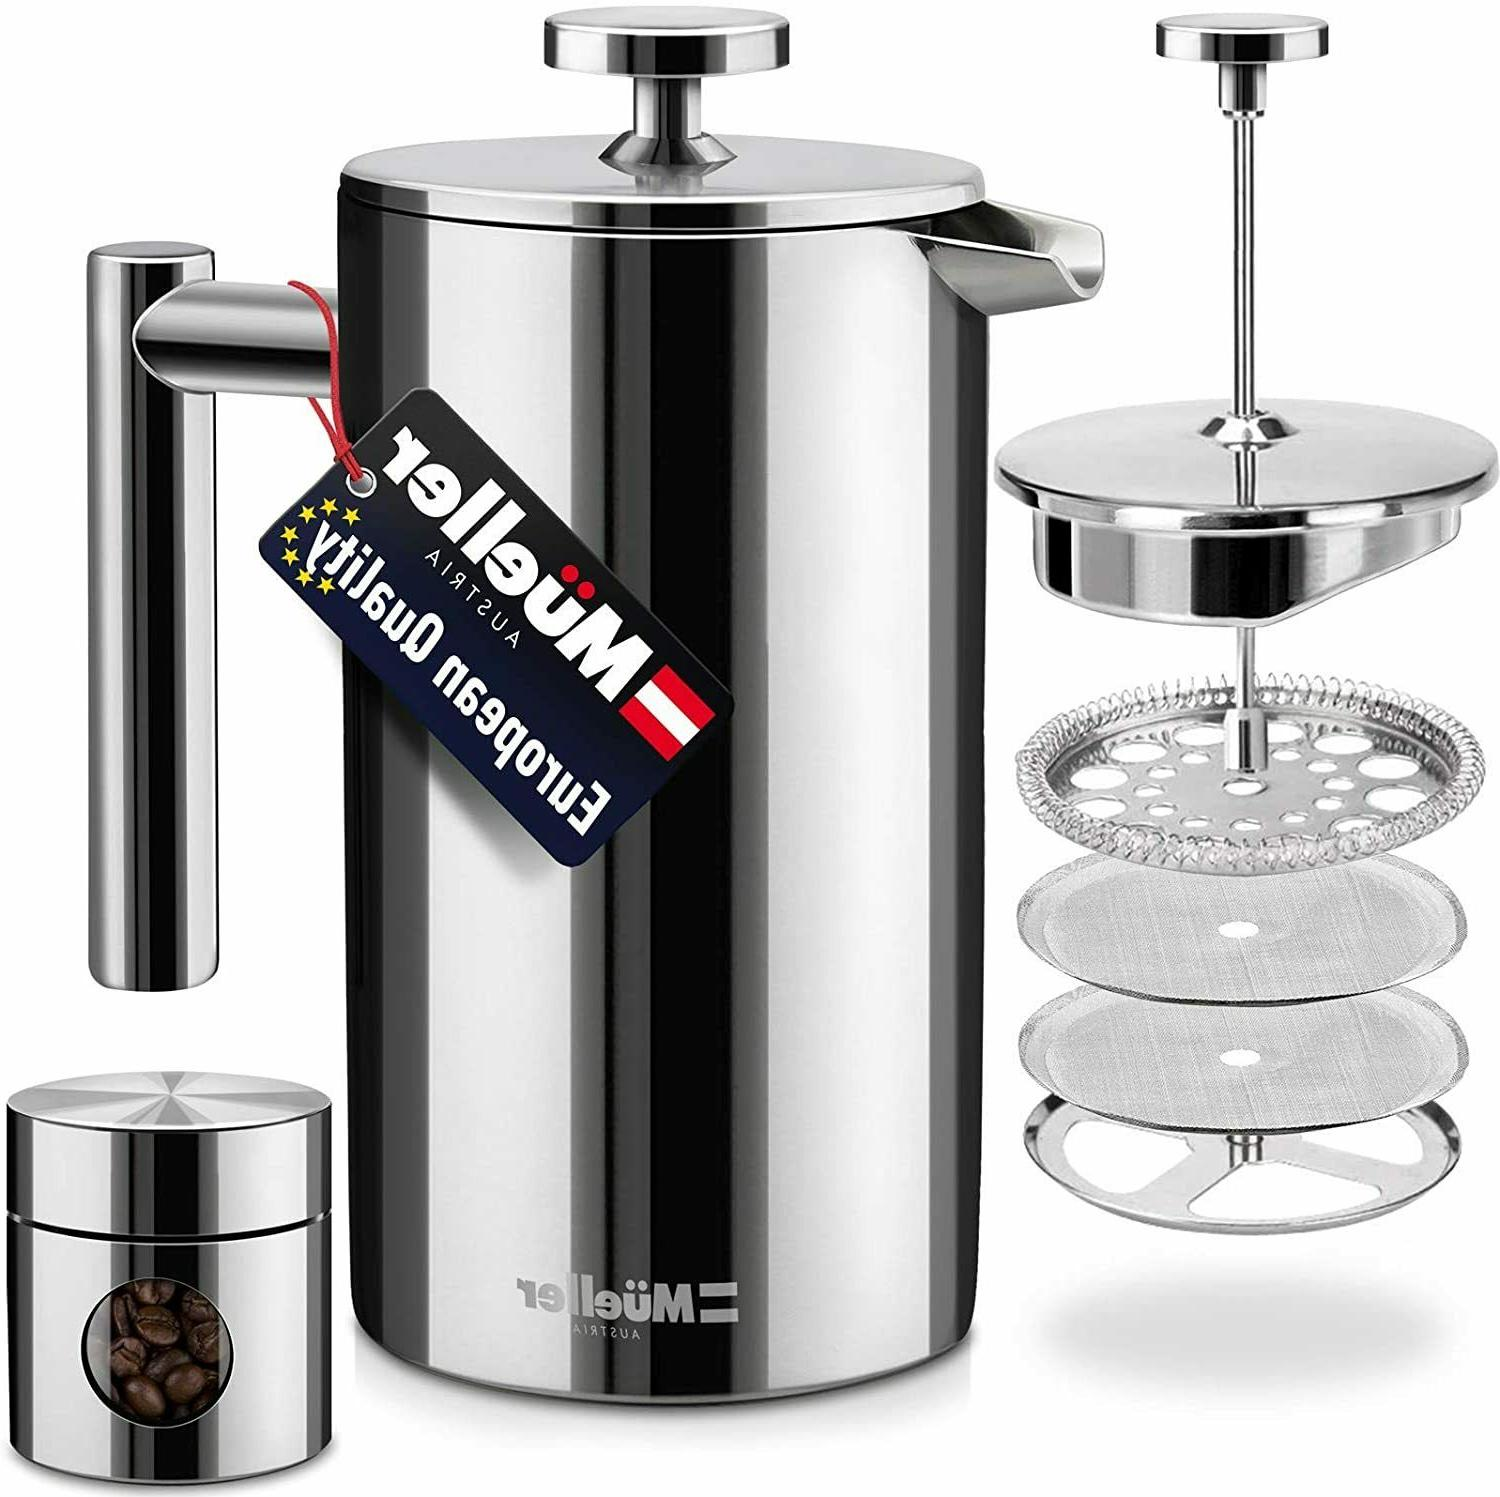 mueller french press double insulated 310 stainless